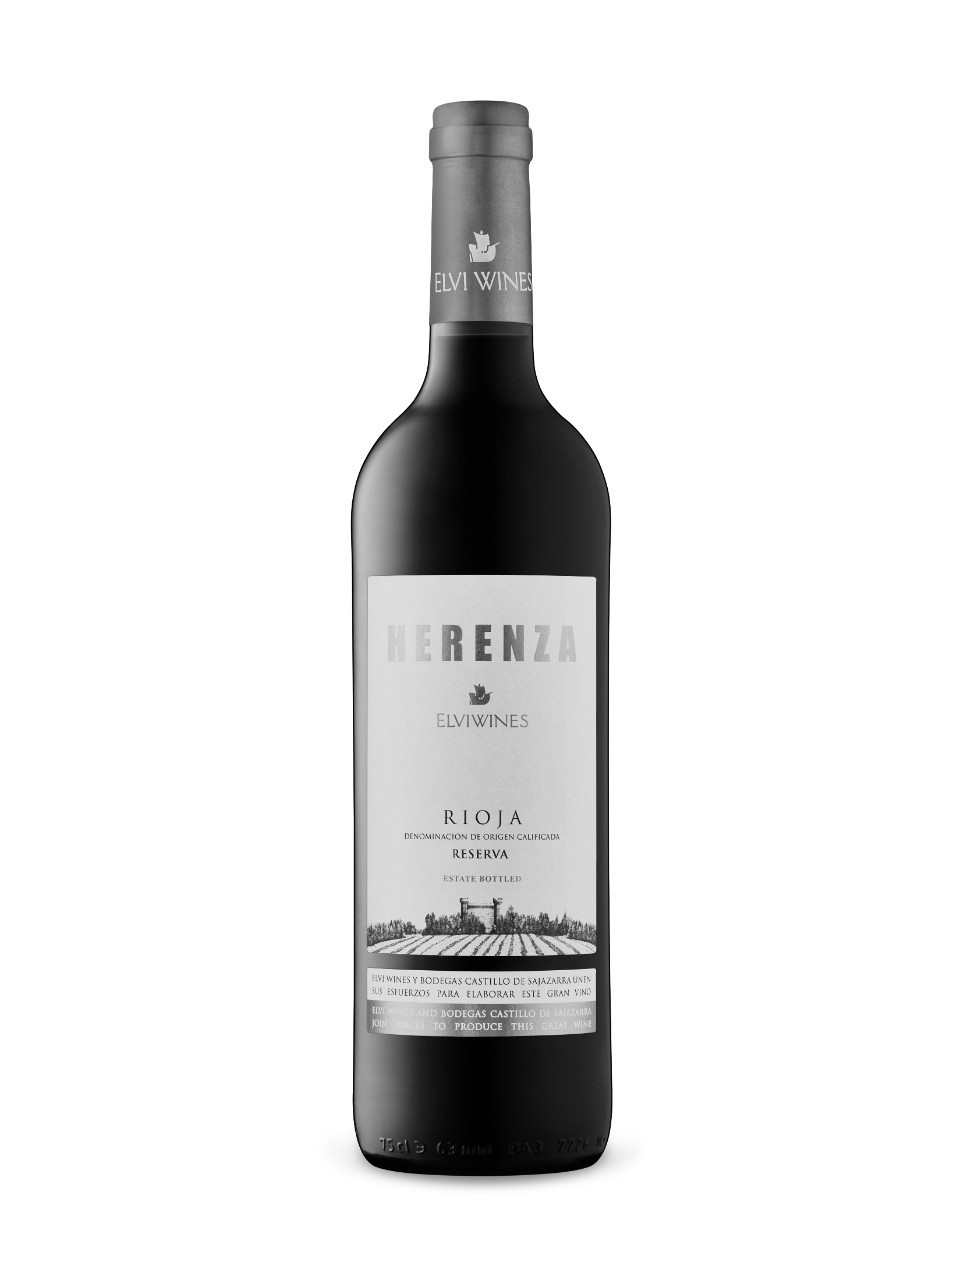 Image for Elvi Wines Herenza Reserva 2010 from LCBO